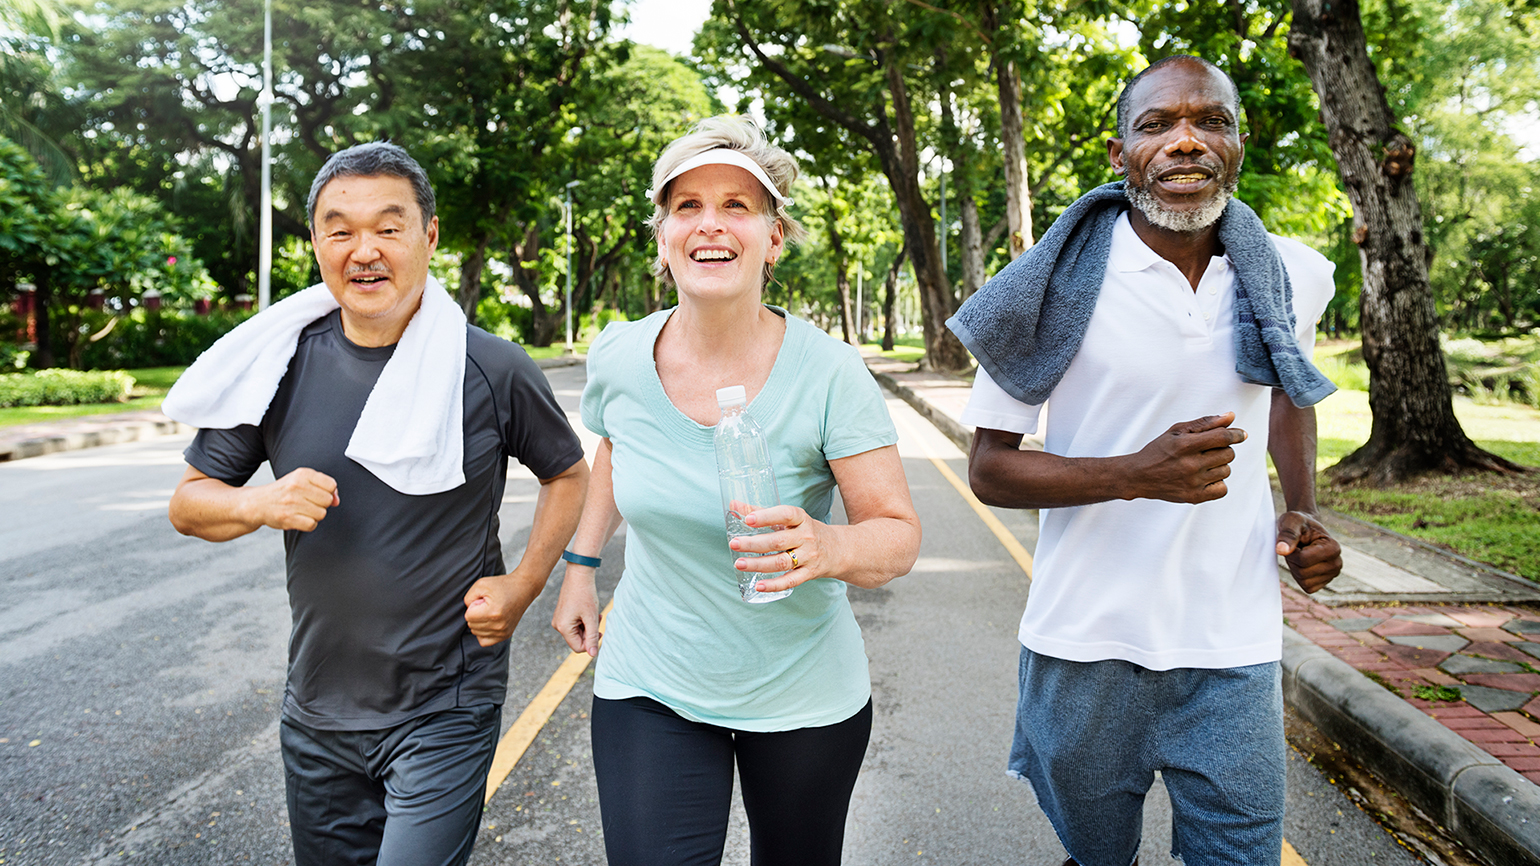 Three friends exercise together